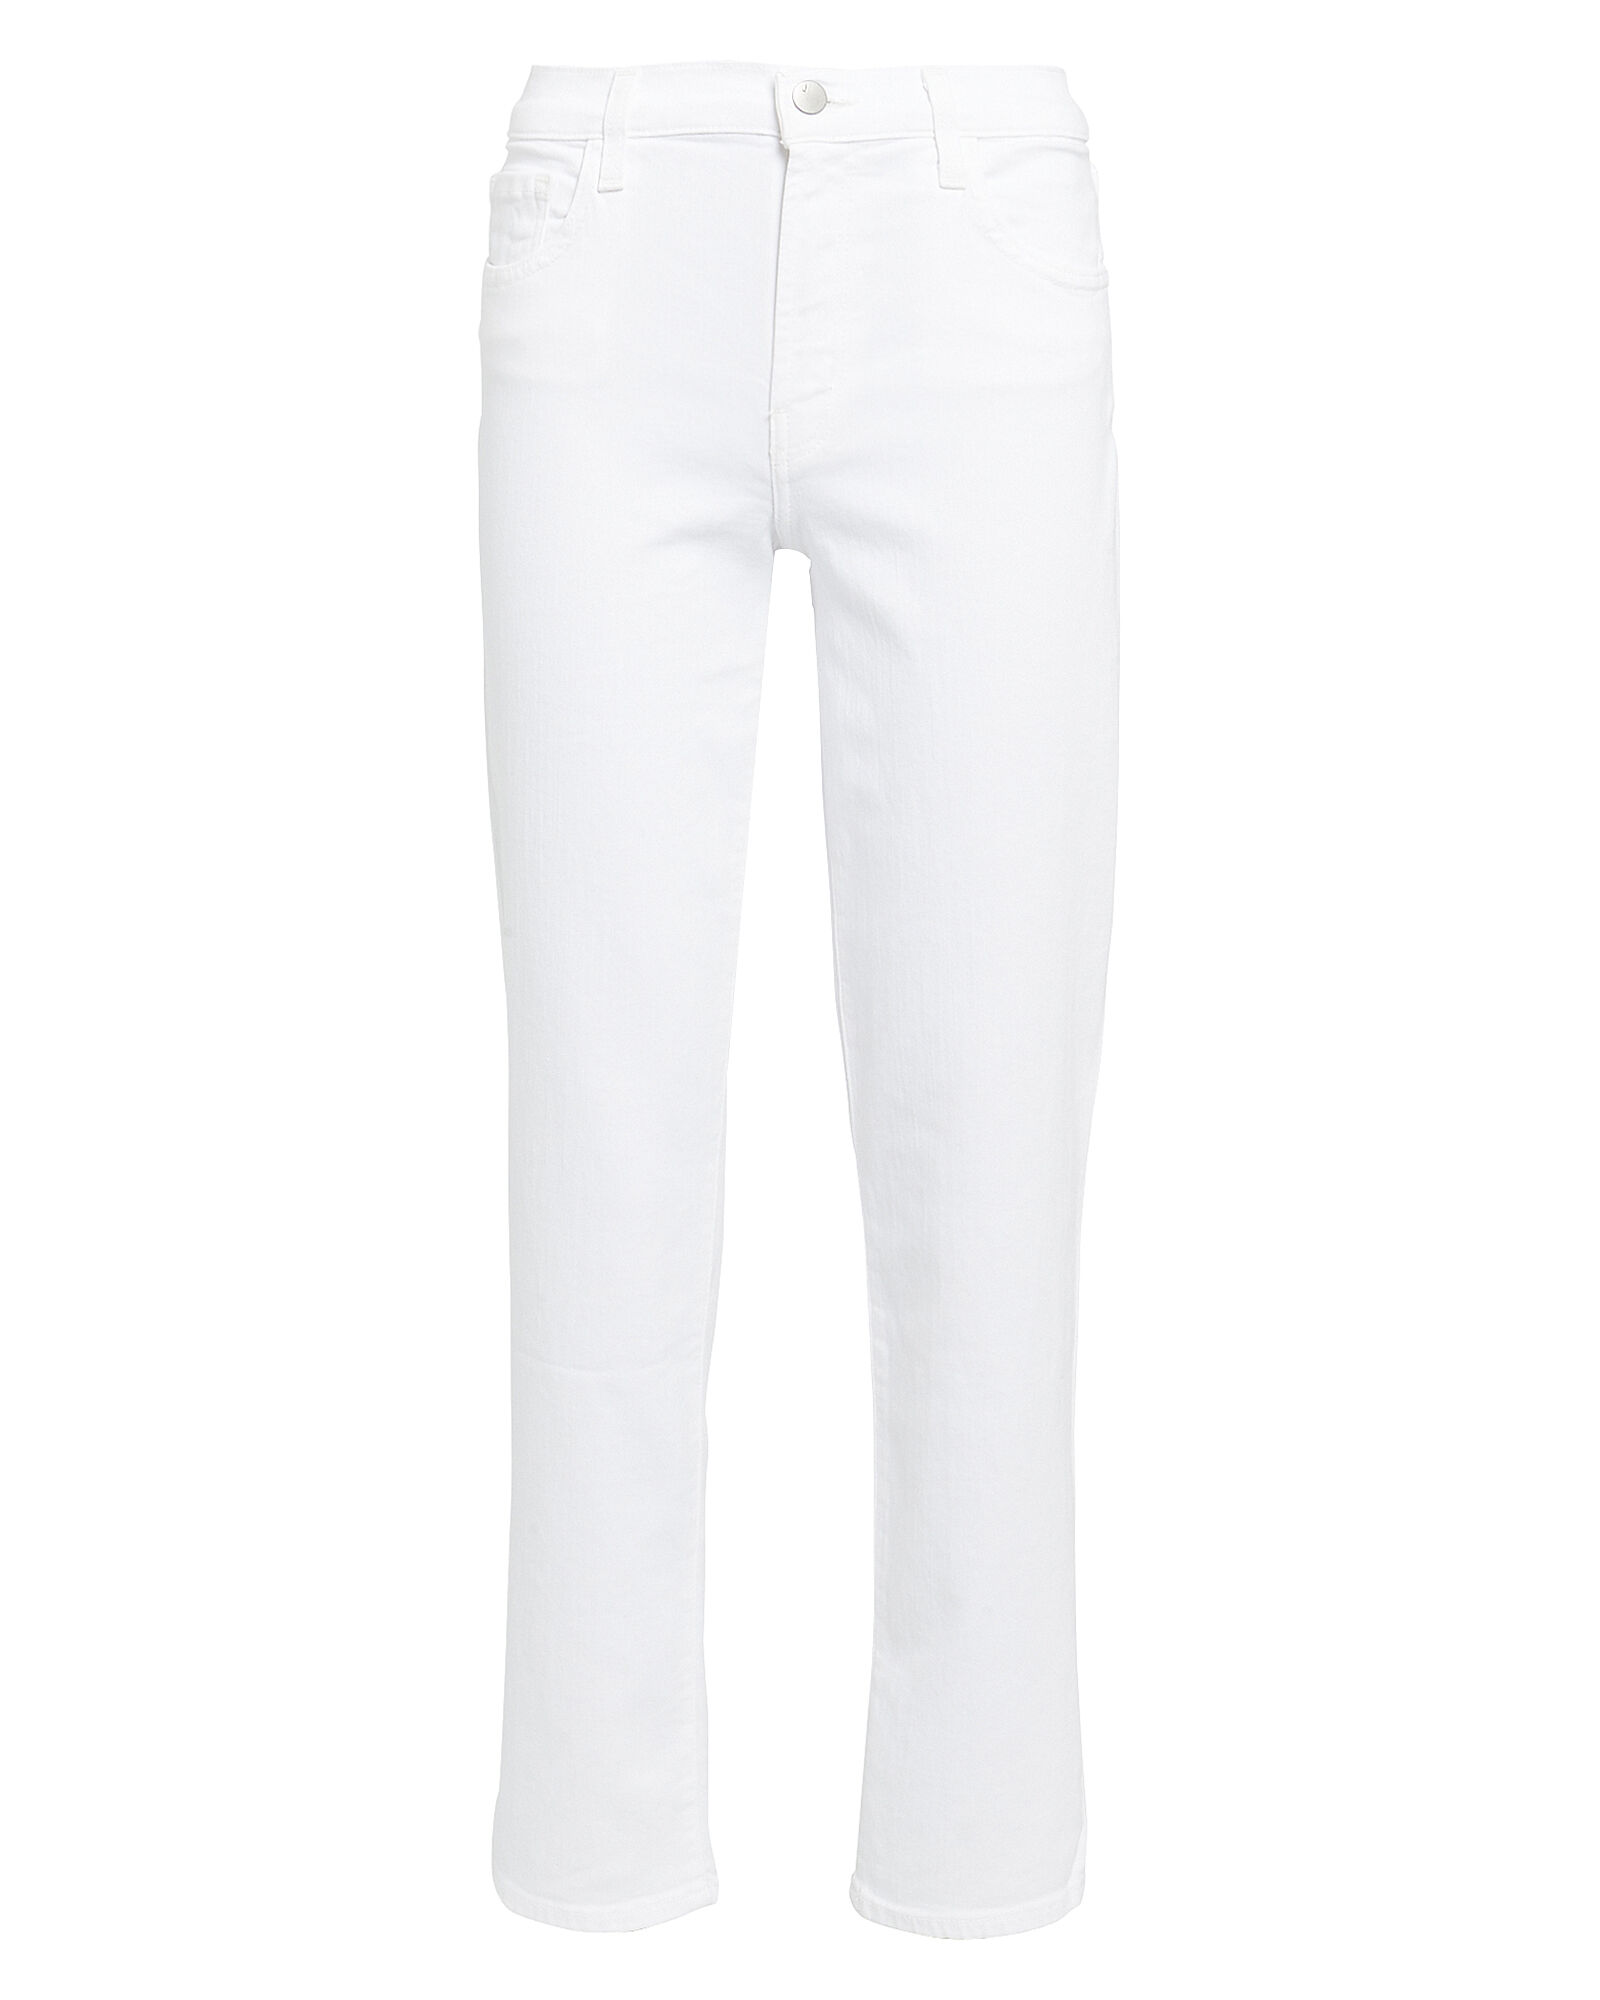 Adele High-Rise Jeans, WHITE, hi-res